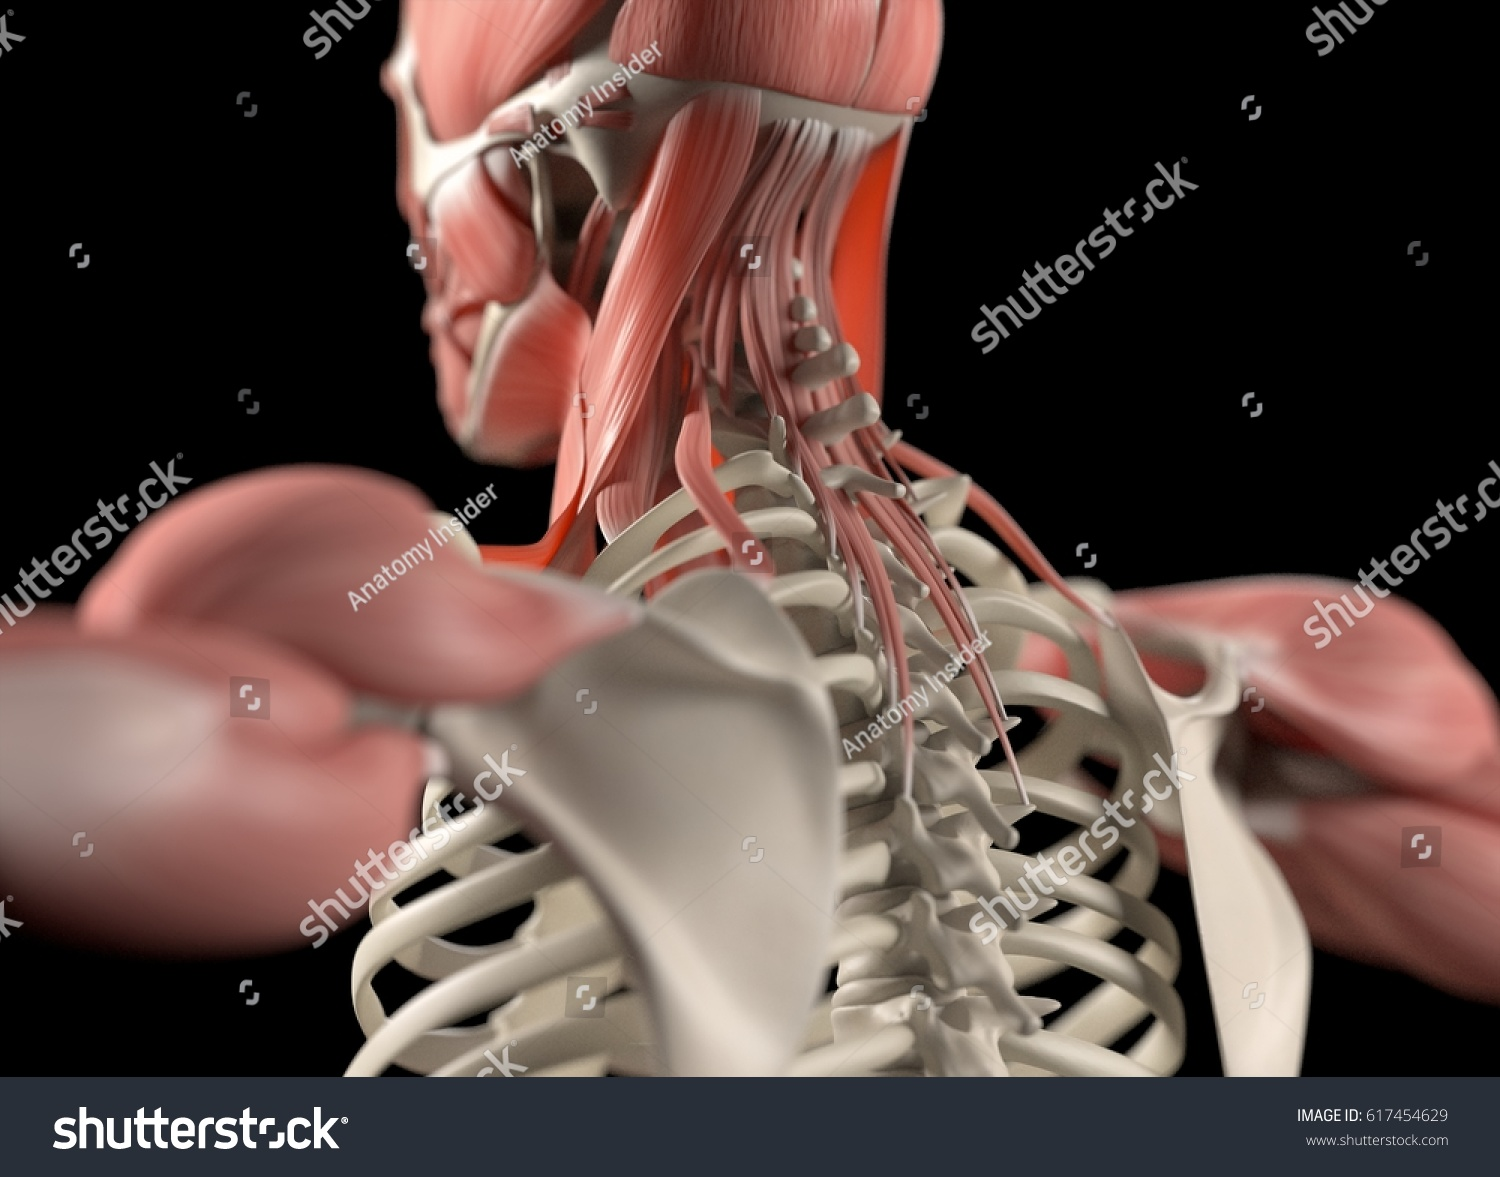 Royalty Free Stock Illustration Of Human Anatomy Body Spine Back